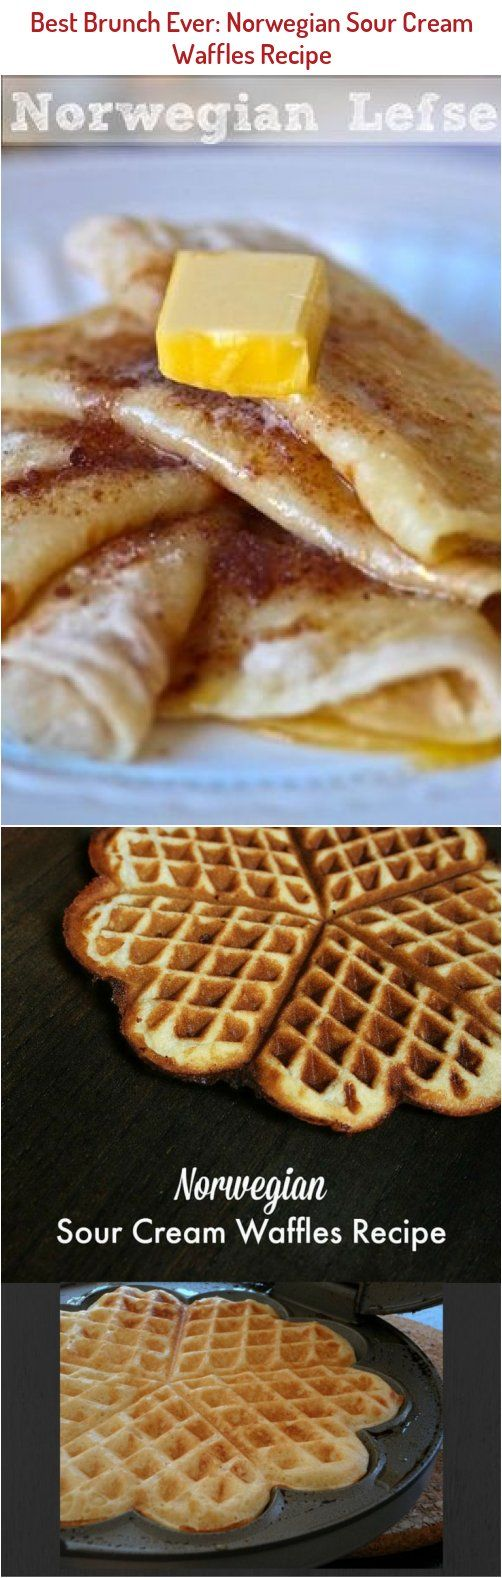 Sour Cream Waffles In 2020 Ebelskiver Recipe Waffle Recipes Waffles